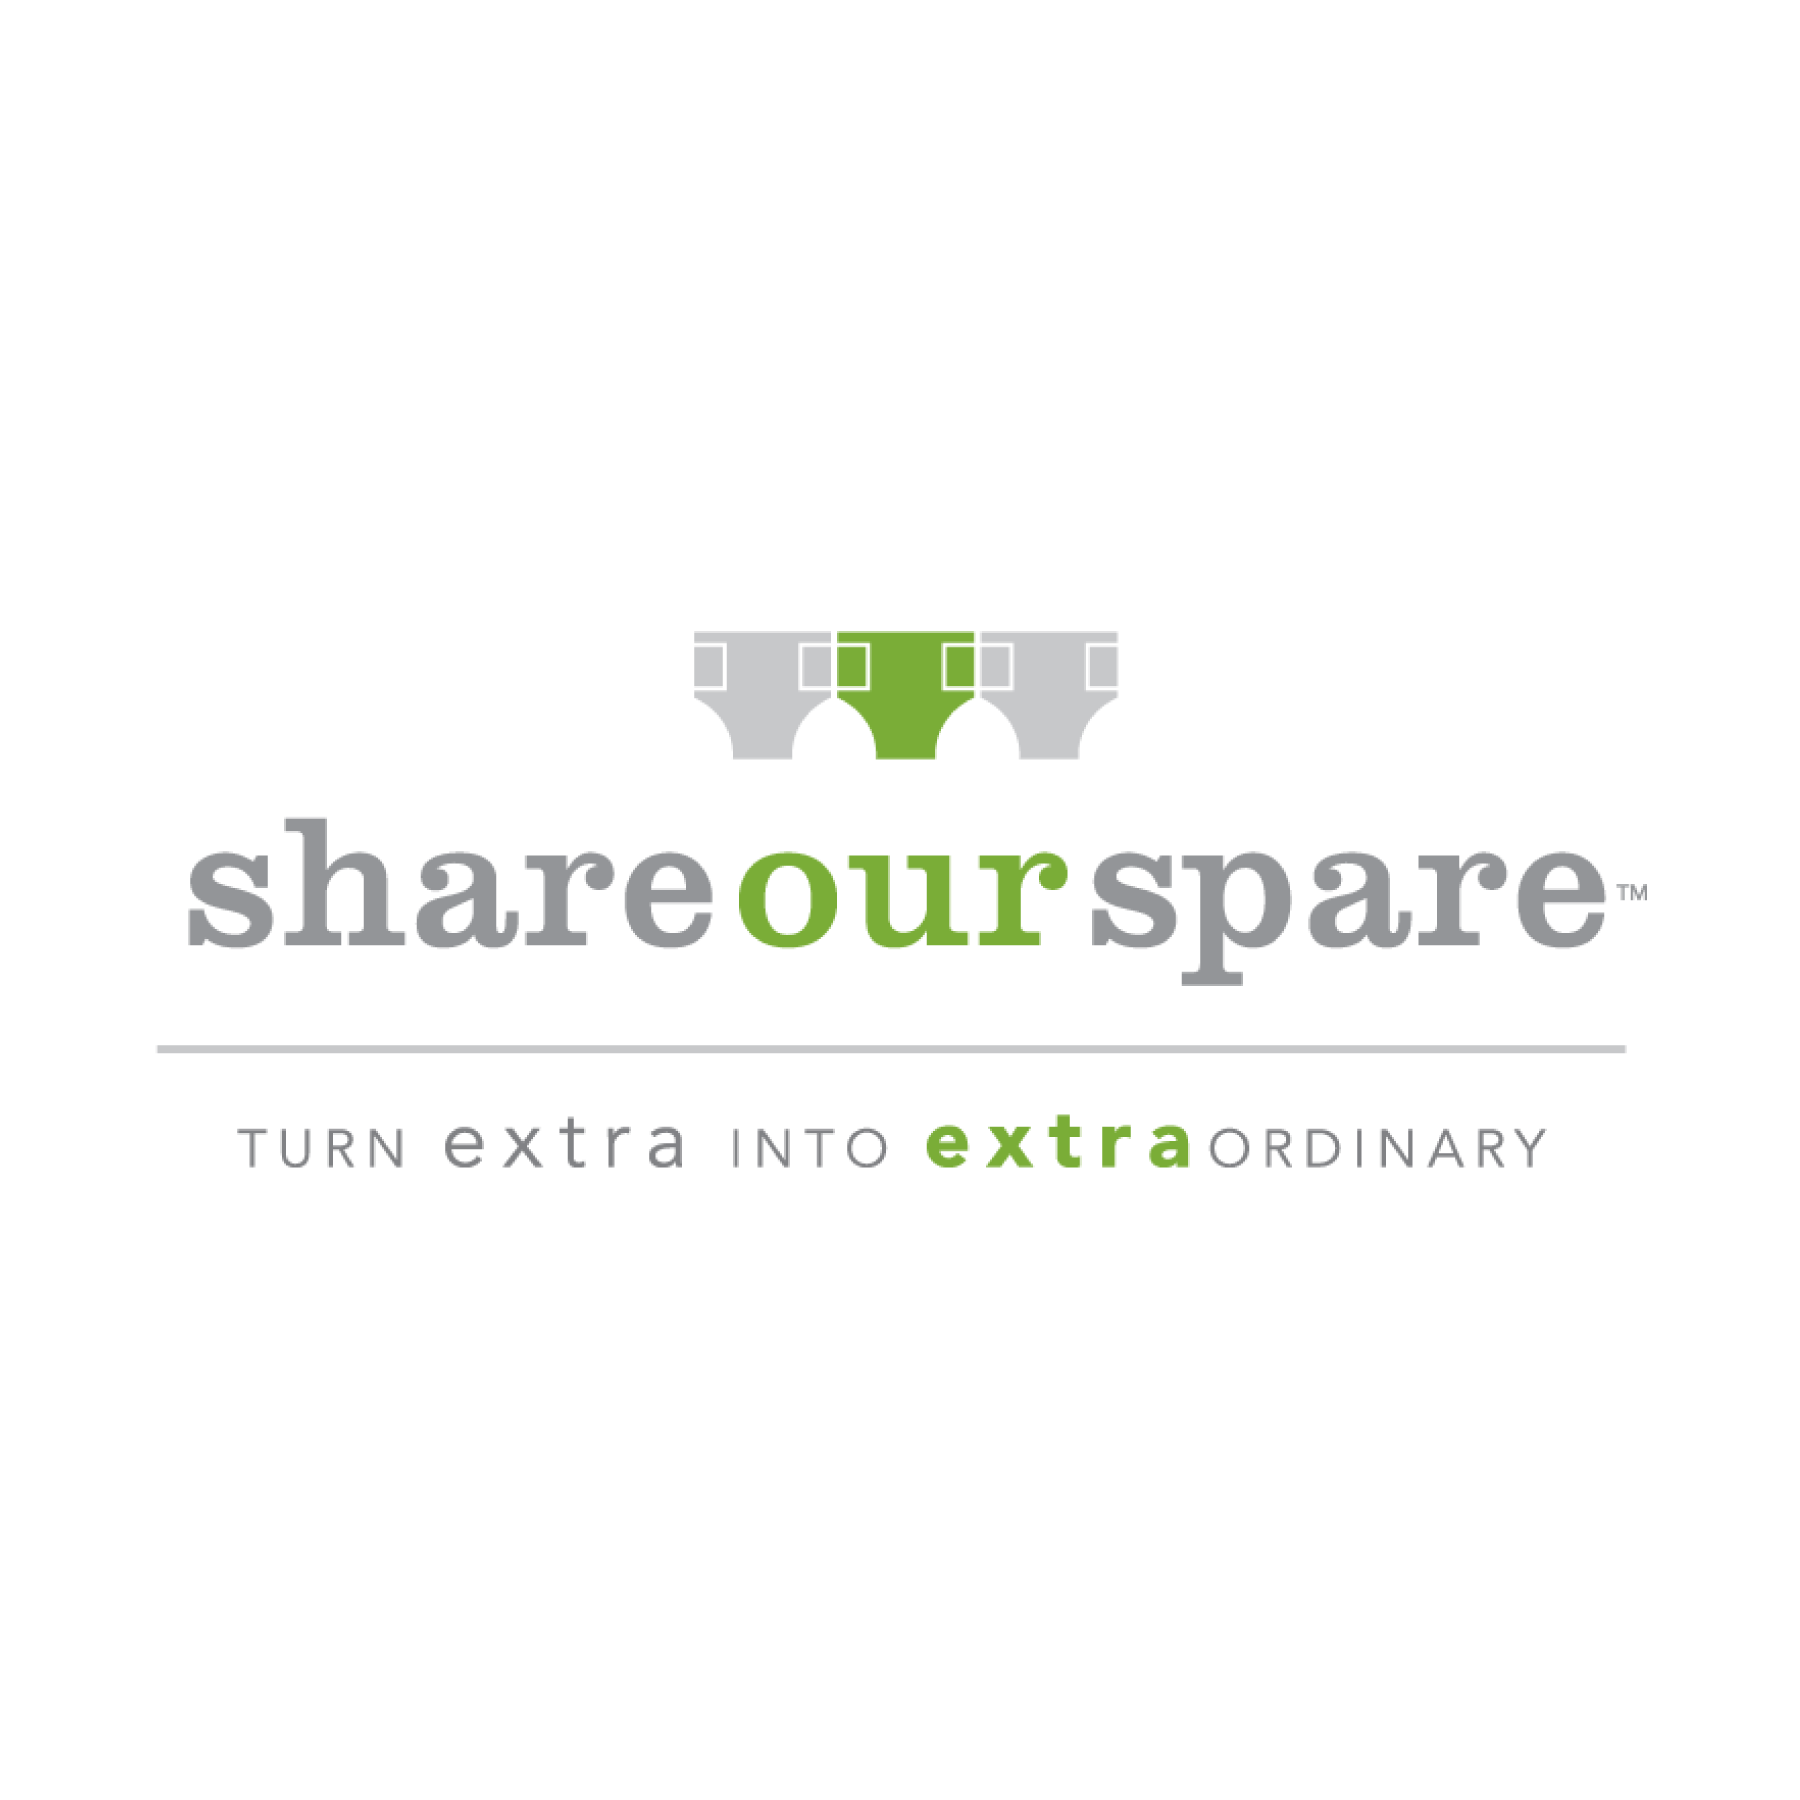 Share-Our-Spare